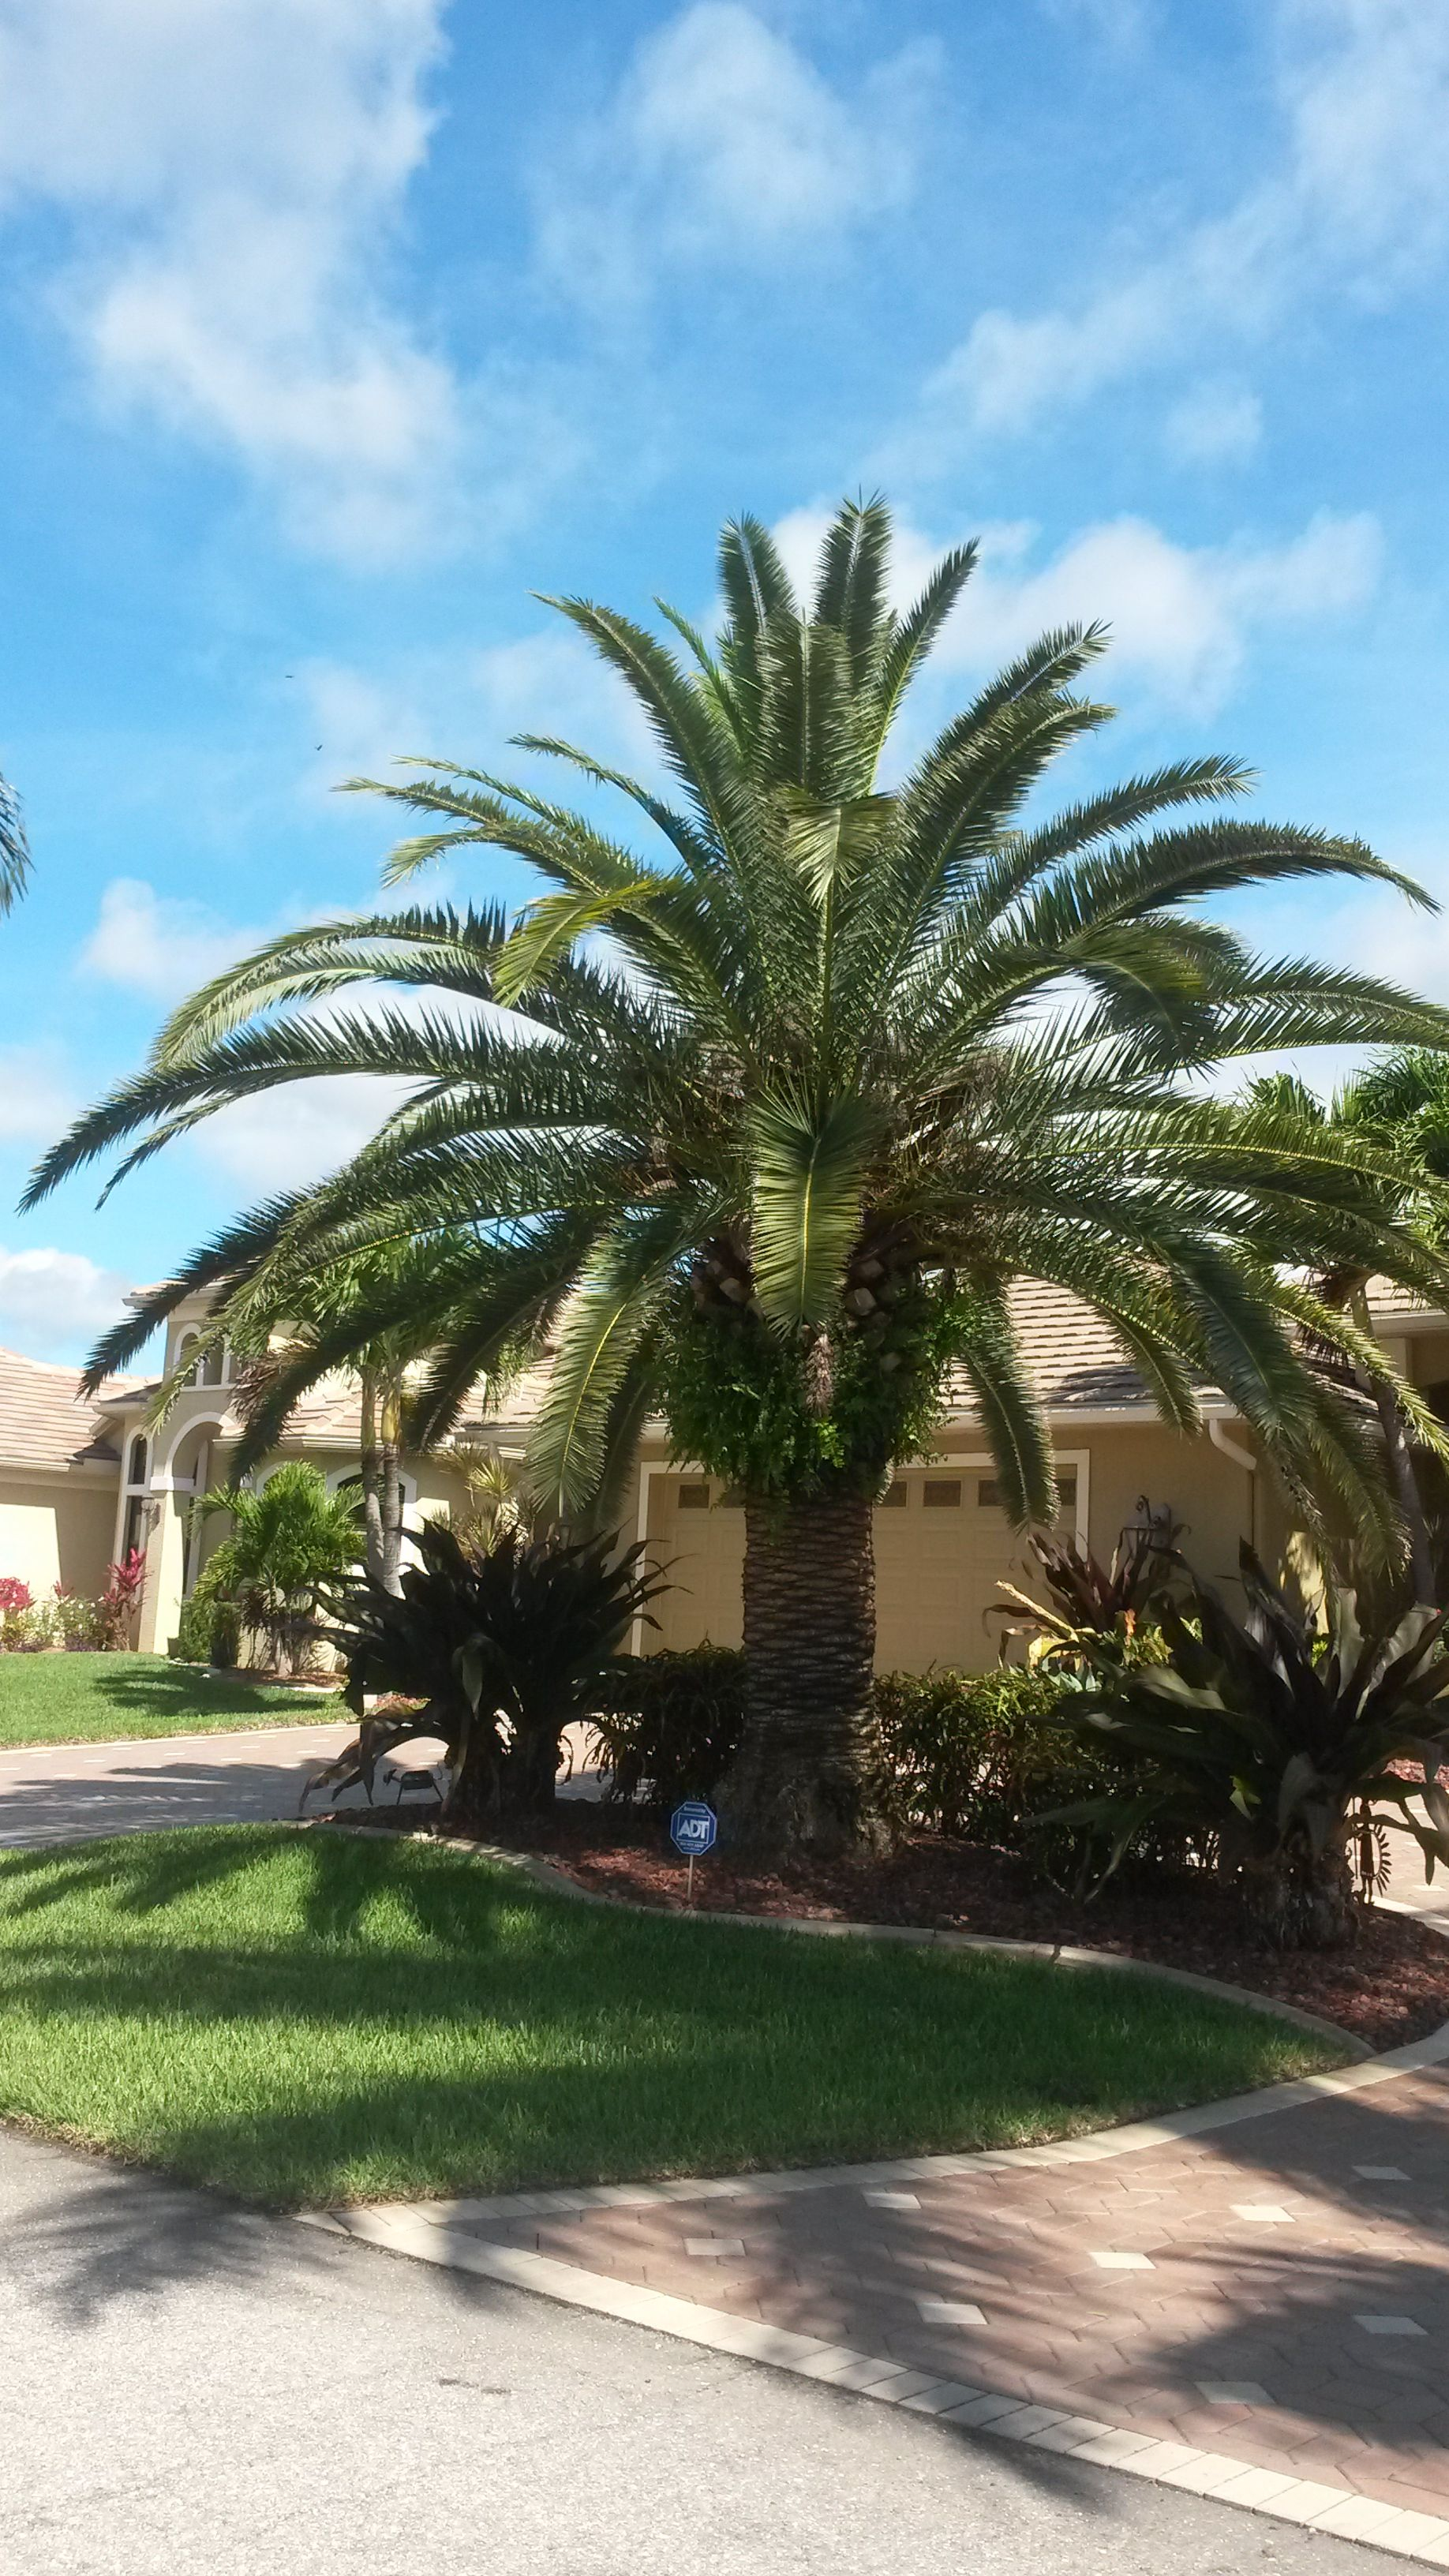 Another palm tree in Florida | Backyard landscaping ... on Backyard Landscaping Ideas With Palm Trees id=75151